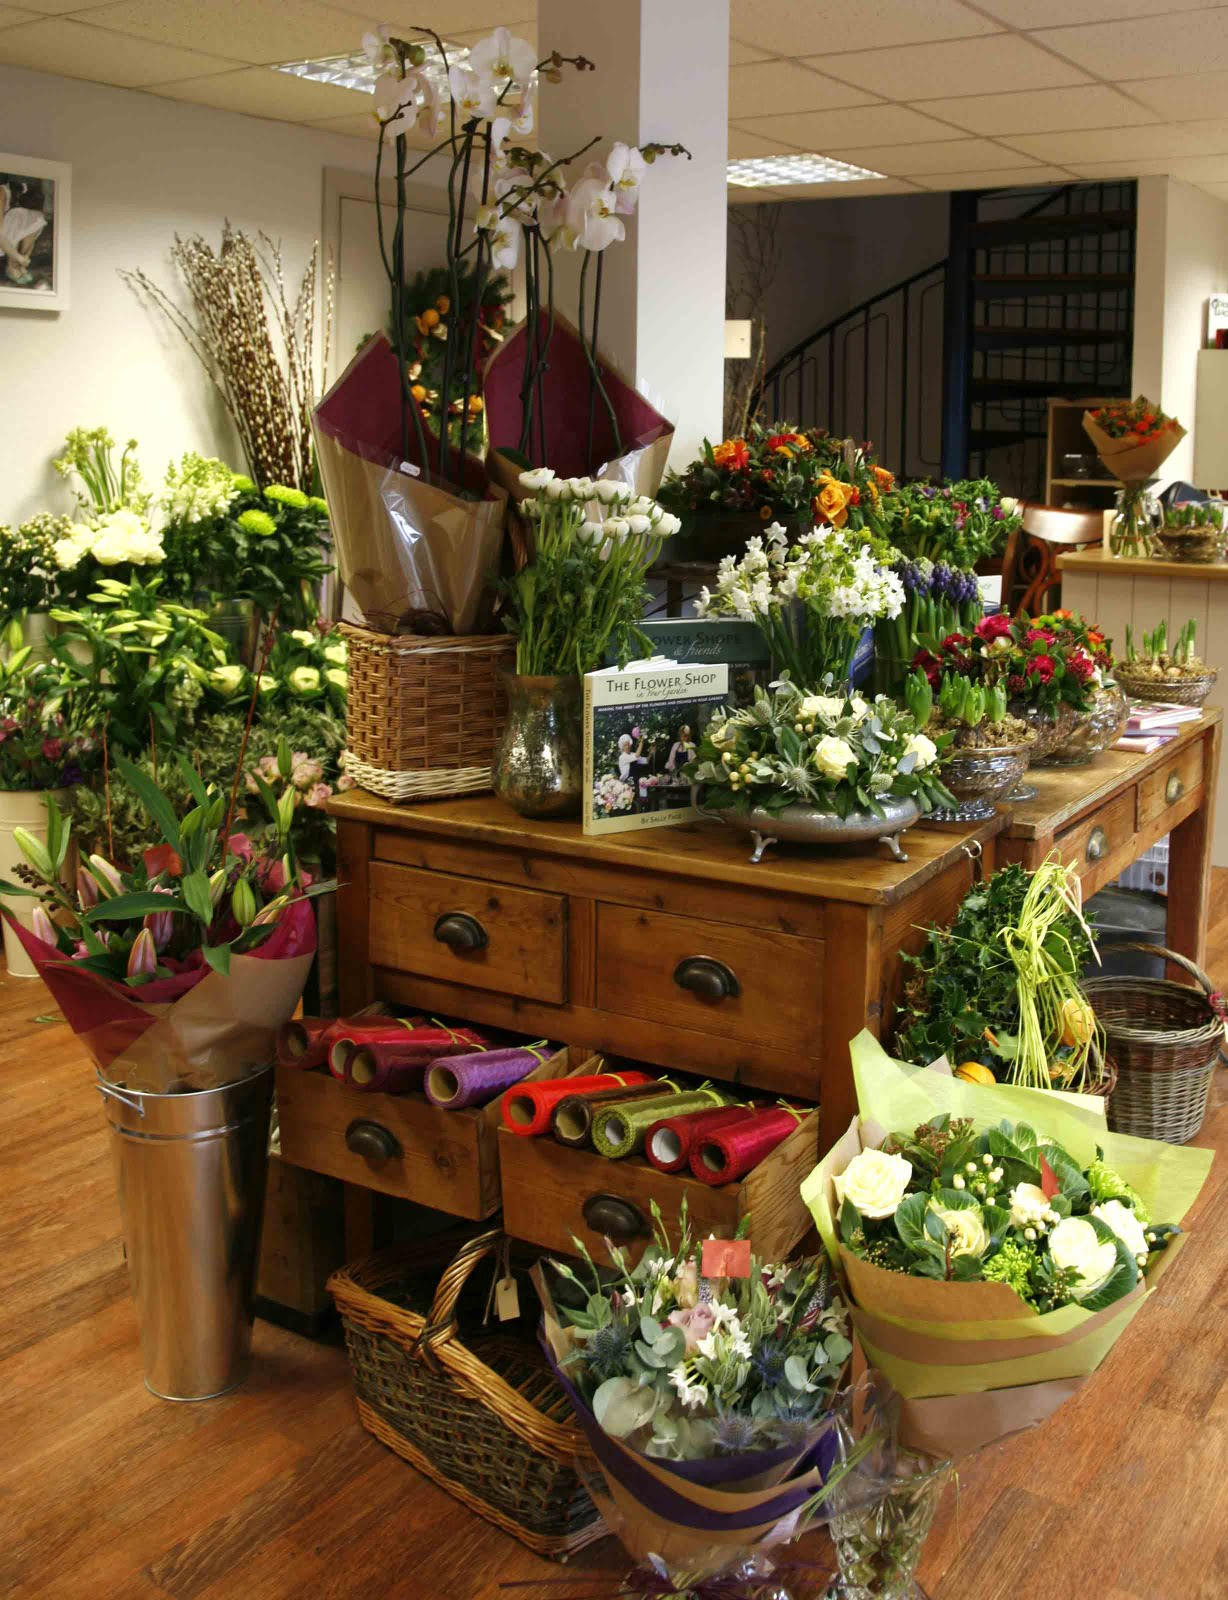 1000 images about My flower shop design inspiration on Pinterest